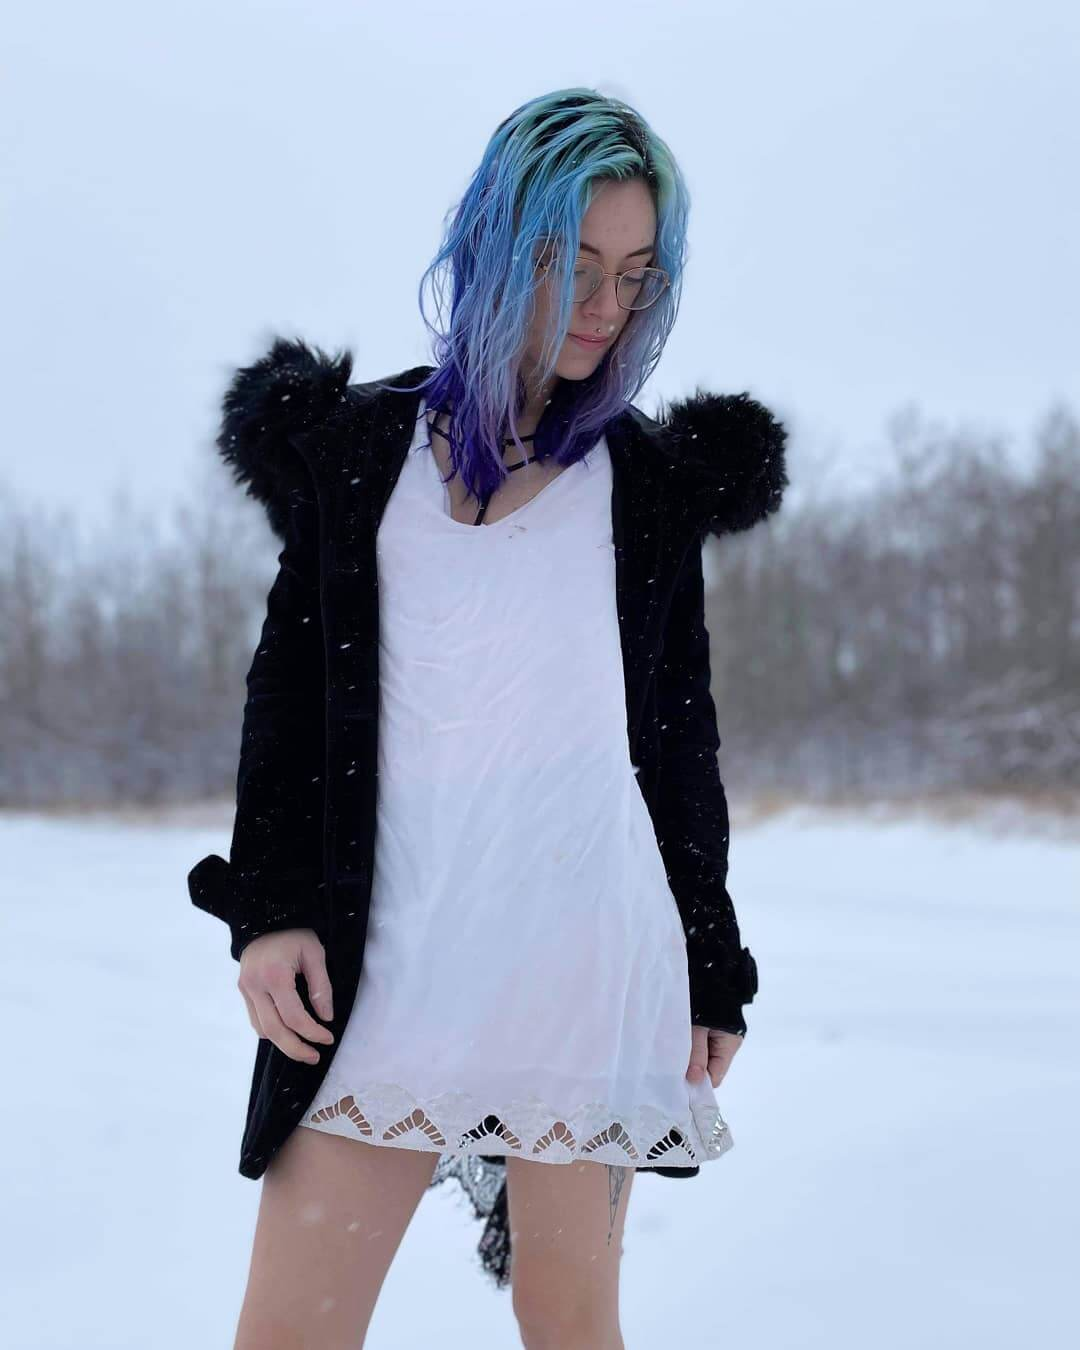 Beautiful Canadian goth snow queen Tora Reign @tora_reign wearing a see through baby doll in the winter